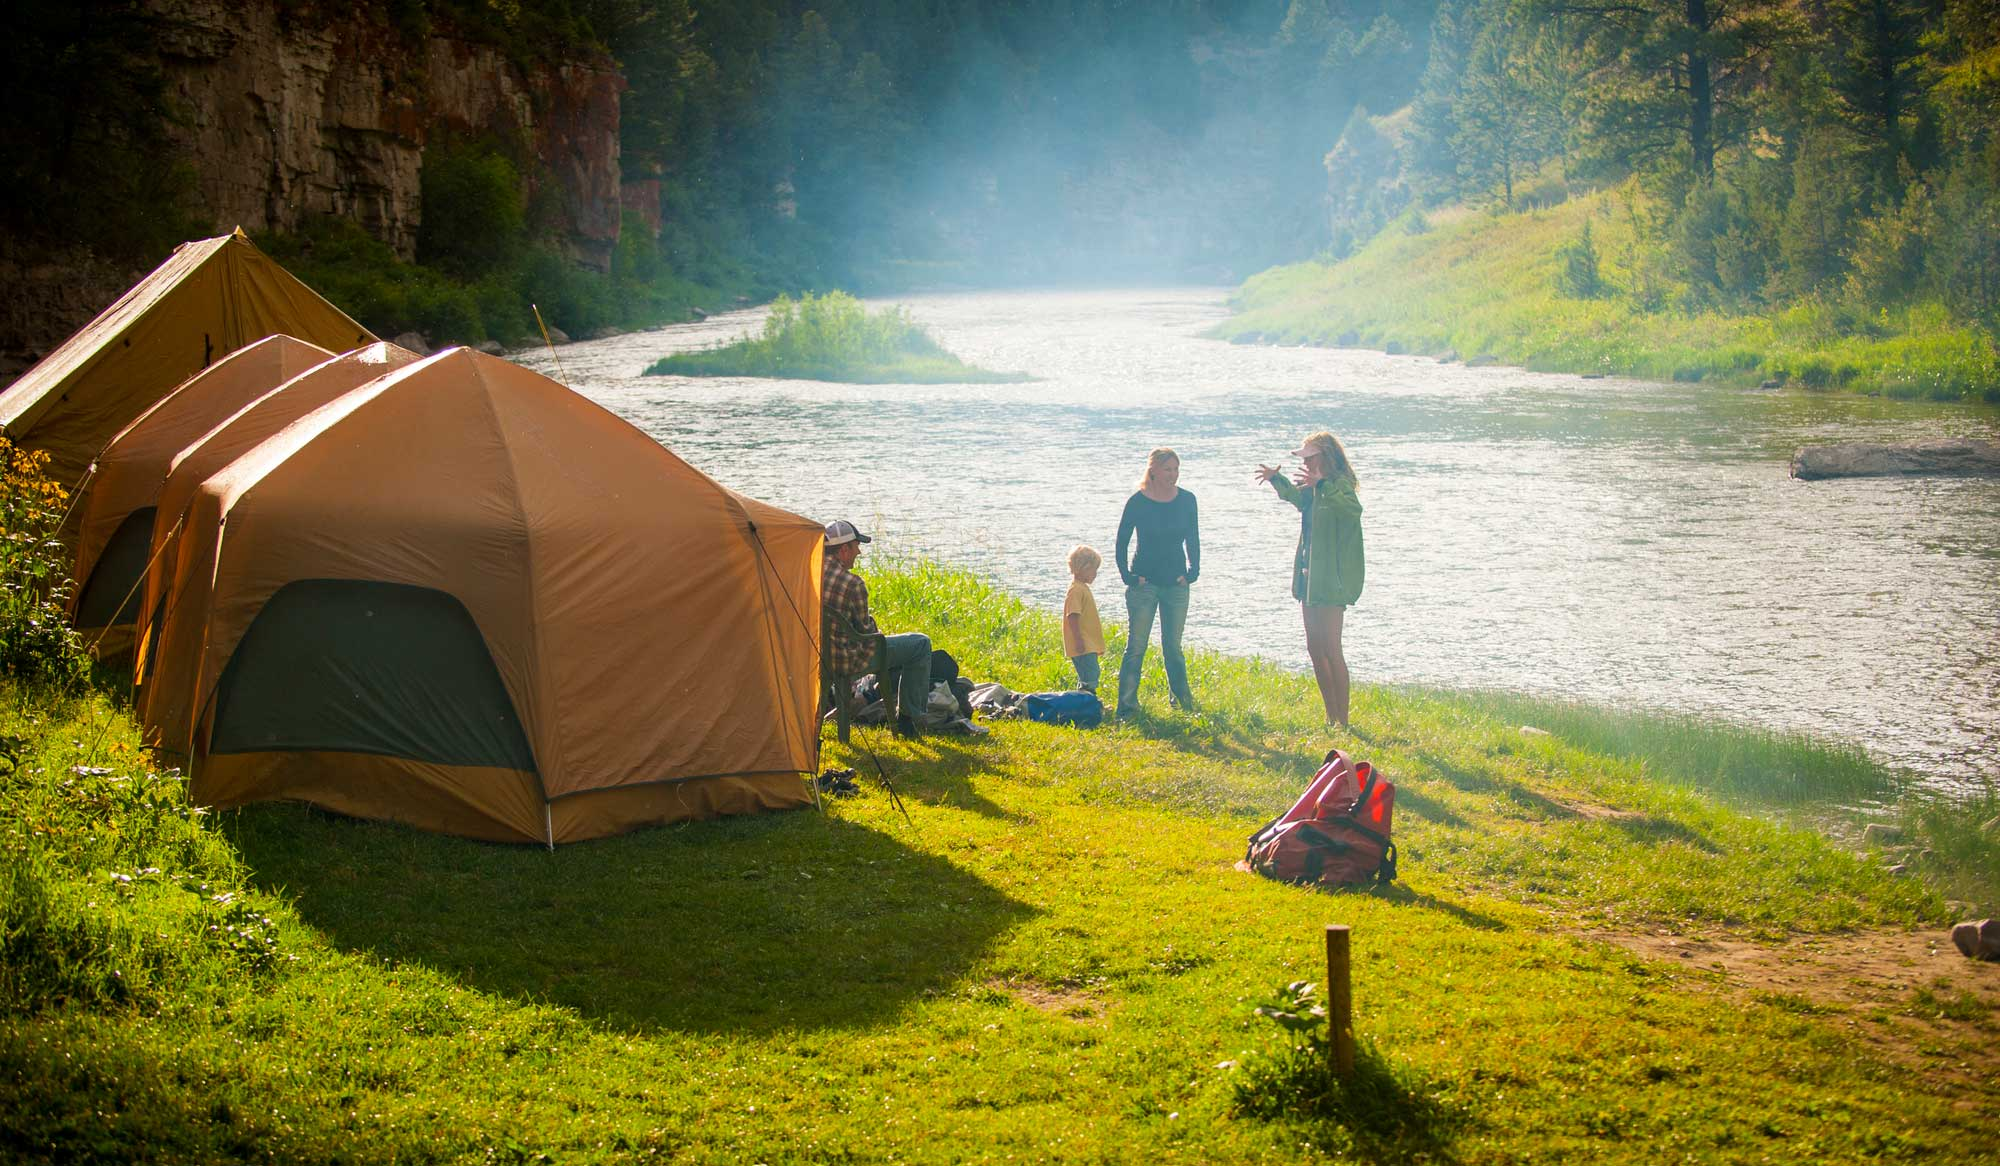 Top 5 Camping Gear a Family Should Not Forget